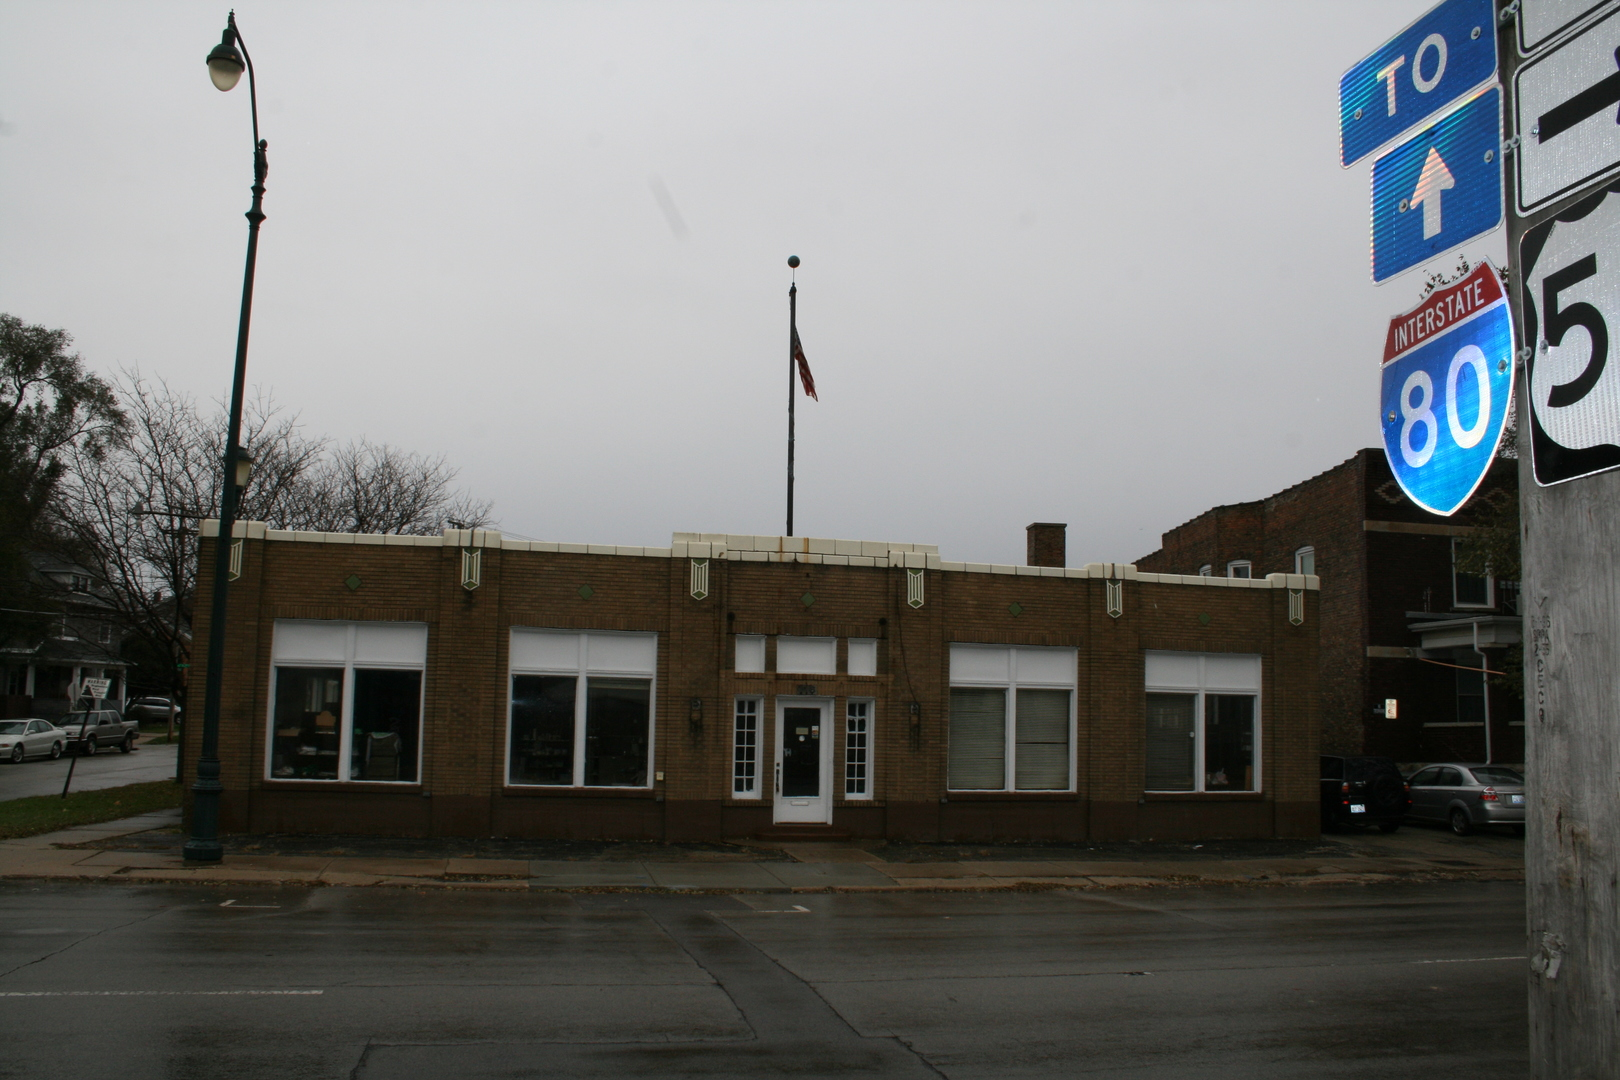 116 Center ,Joliet, Illinois 60435